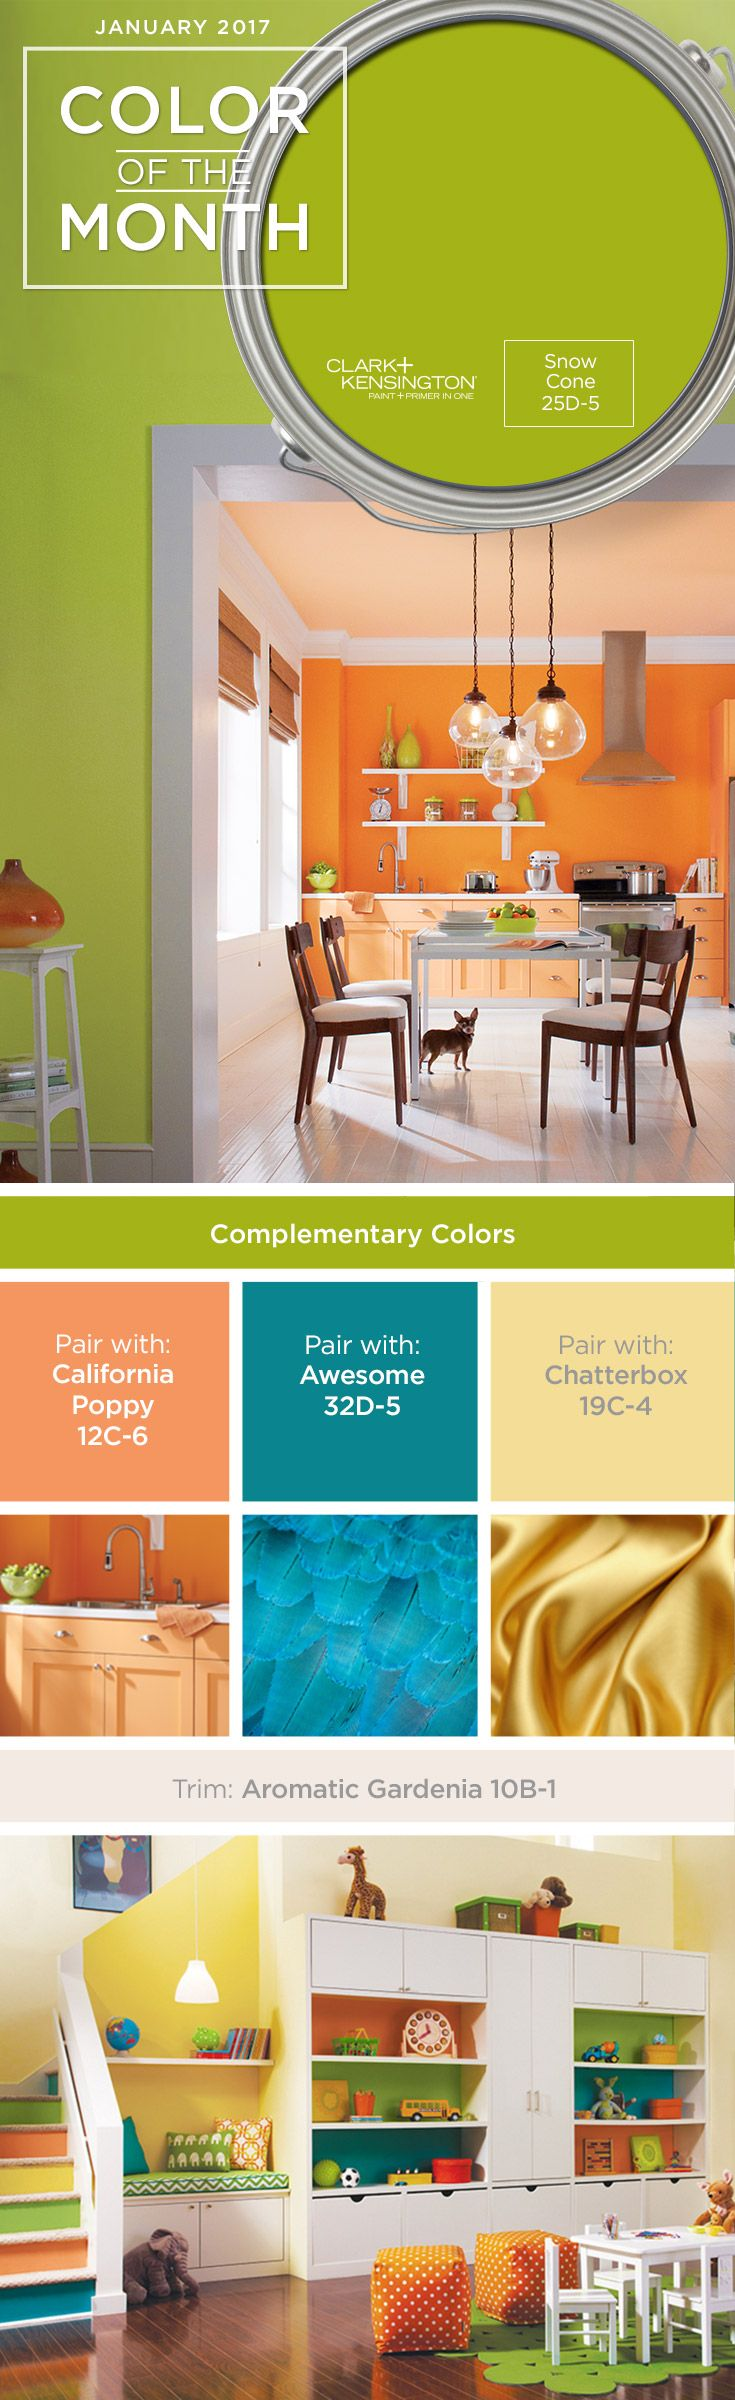 Add some color to your home with Snow Cone, our January paint color of the month from Clark+Kensington. Try adding this paint color to your kitchen, bedroom or bathroom for a pop of color that will fit perfectly with your home décor.